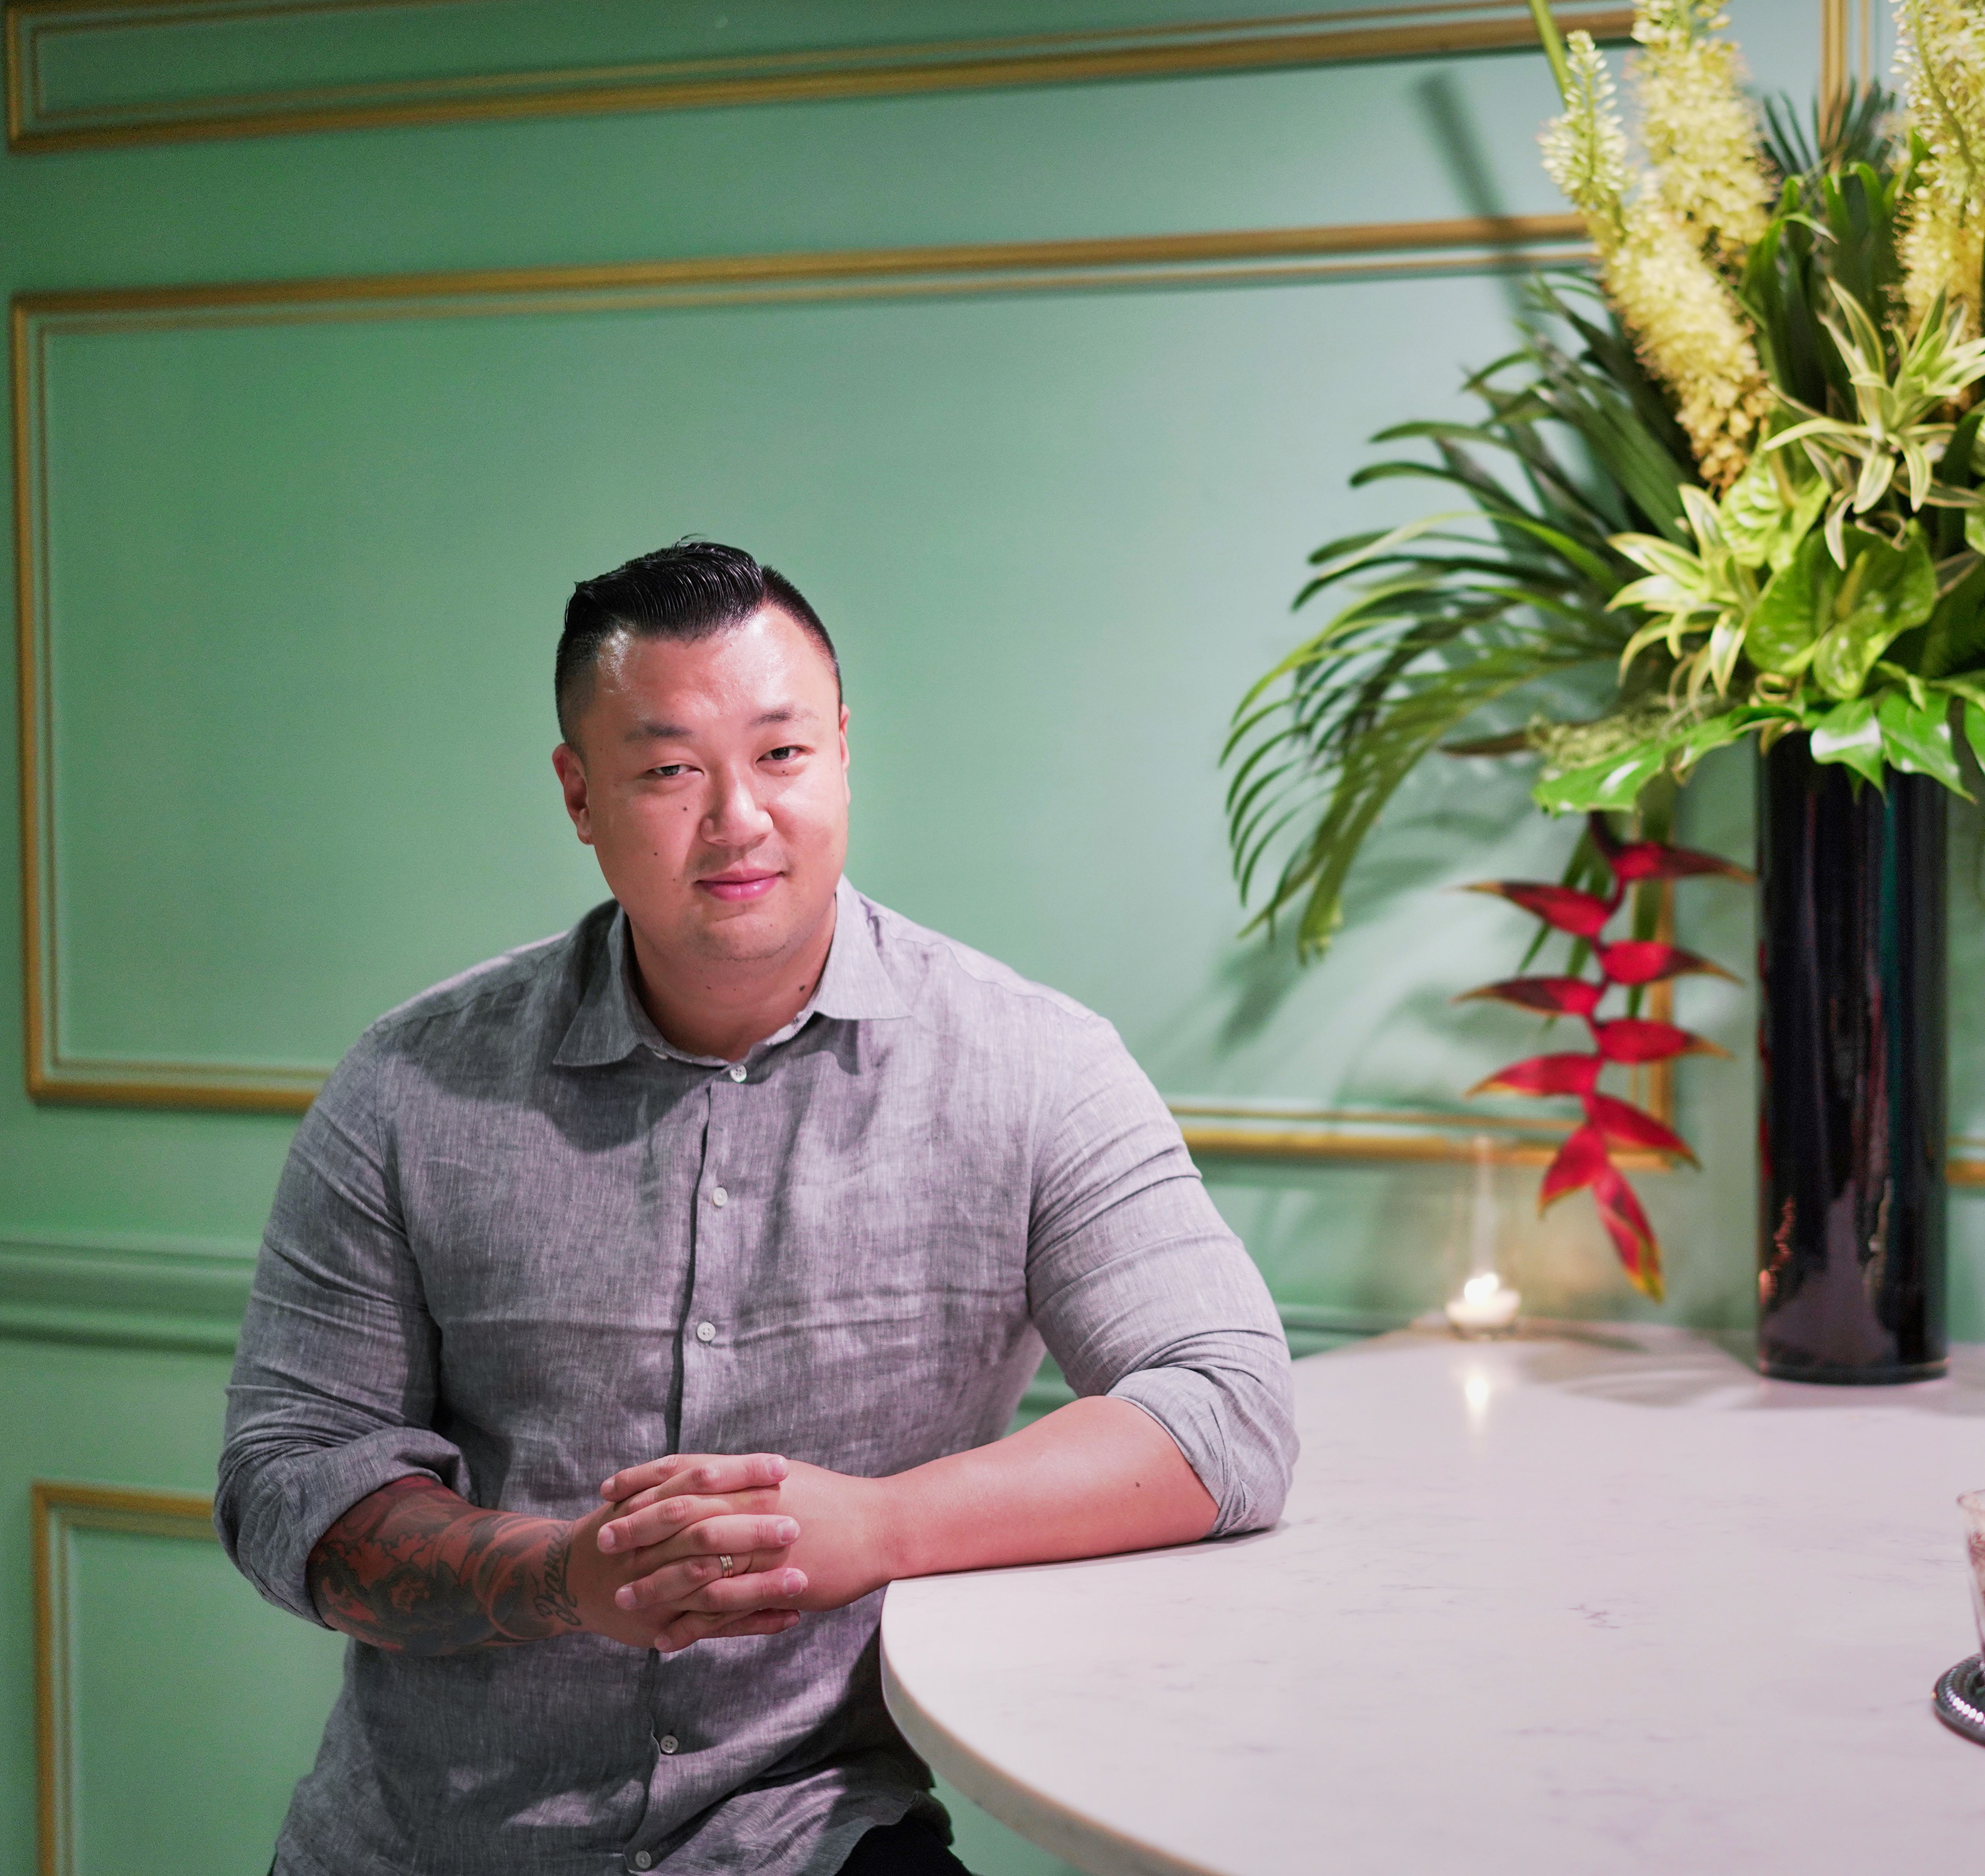 A man stands against a white marble bar, looking at the camera. There are tropical plants to his right and a mint green wall behind him.